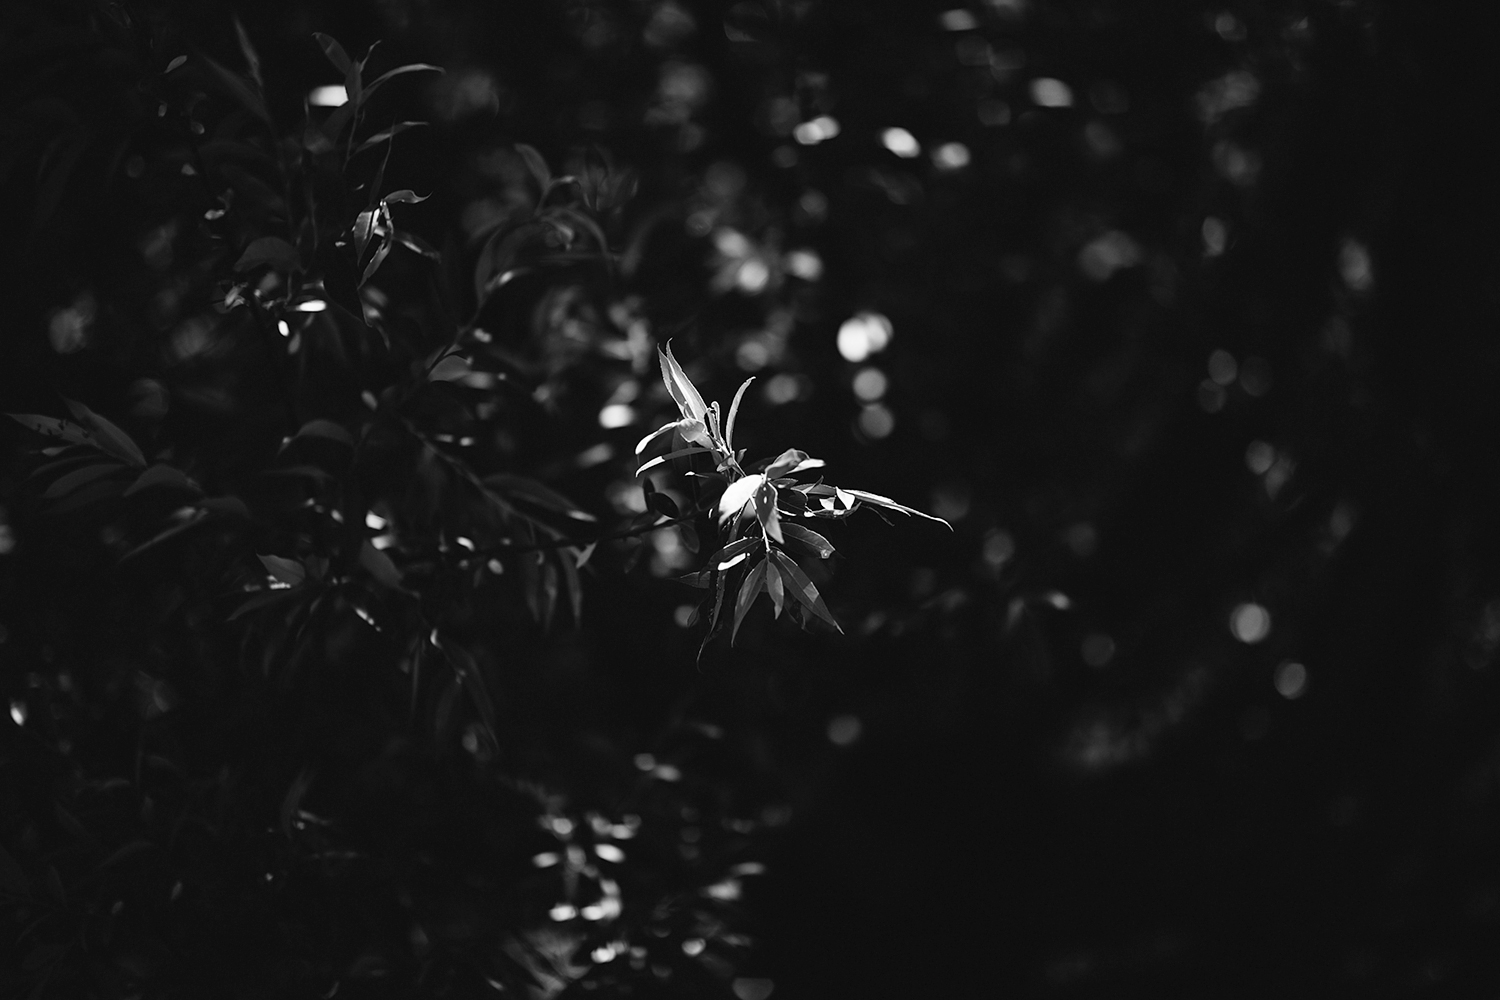 Best-Documentary-photojournalistic-wedding-photographers-Toronto-Ontario-Canada-Rural-Country-House-Backyard-Wedding-Vintage-childhood-home-willow-tree-details-light-bw.jpg